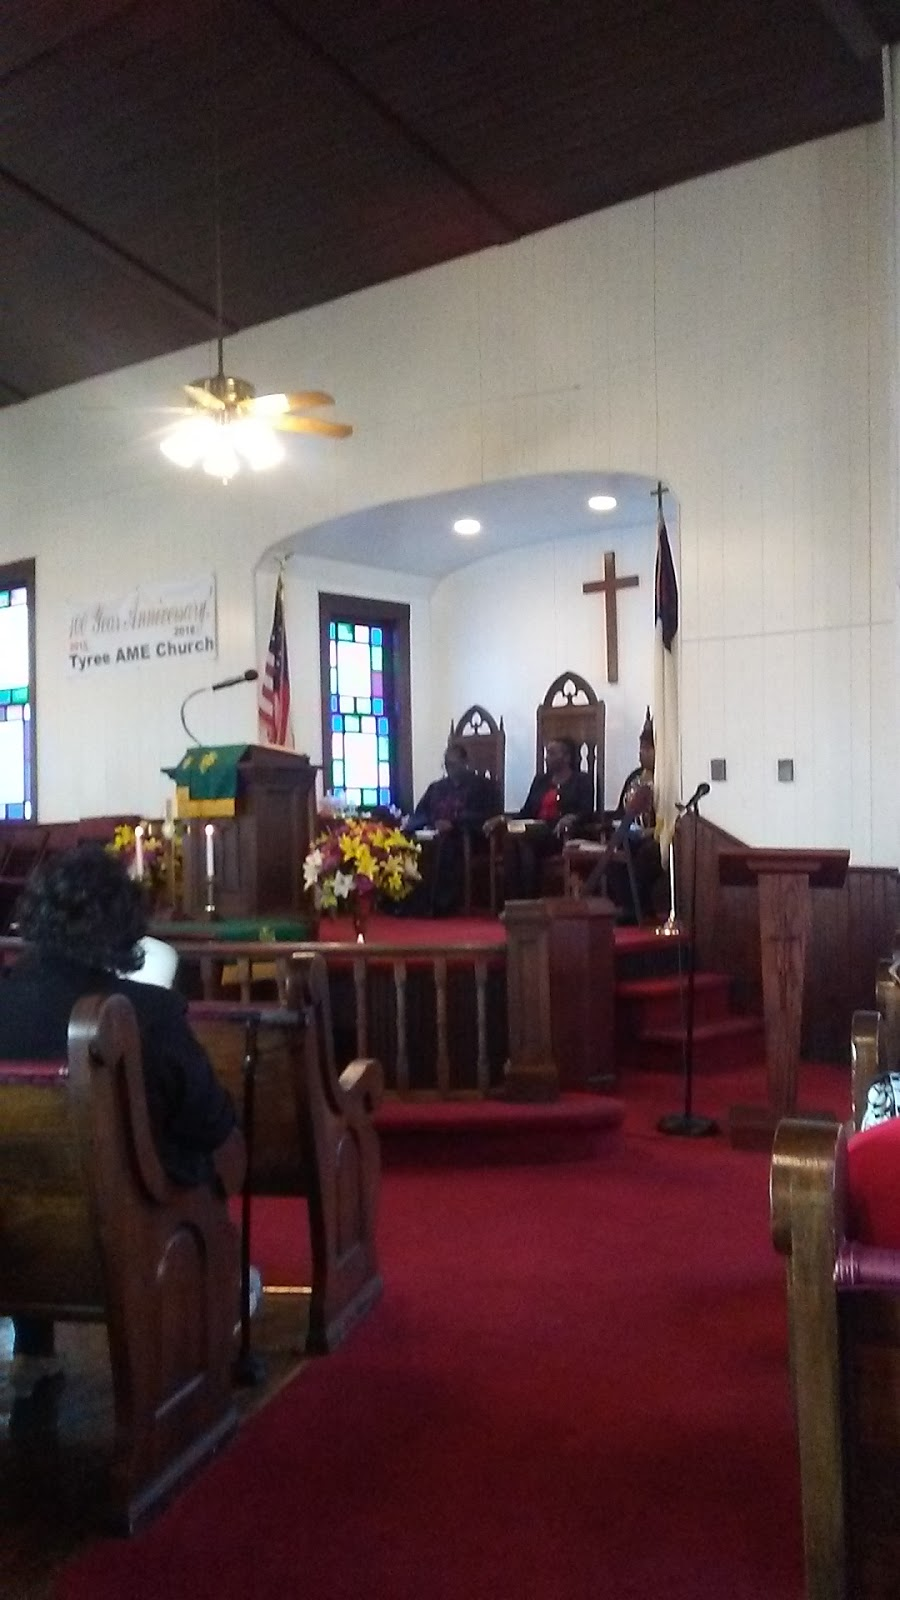 Tyree Ame Church - church    Photo 3 of 5   Address: 9004 Trappe Rd, Berlin, MD 21811, USA   Phone: (410) 641-1915